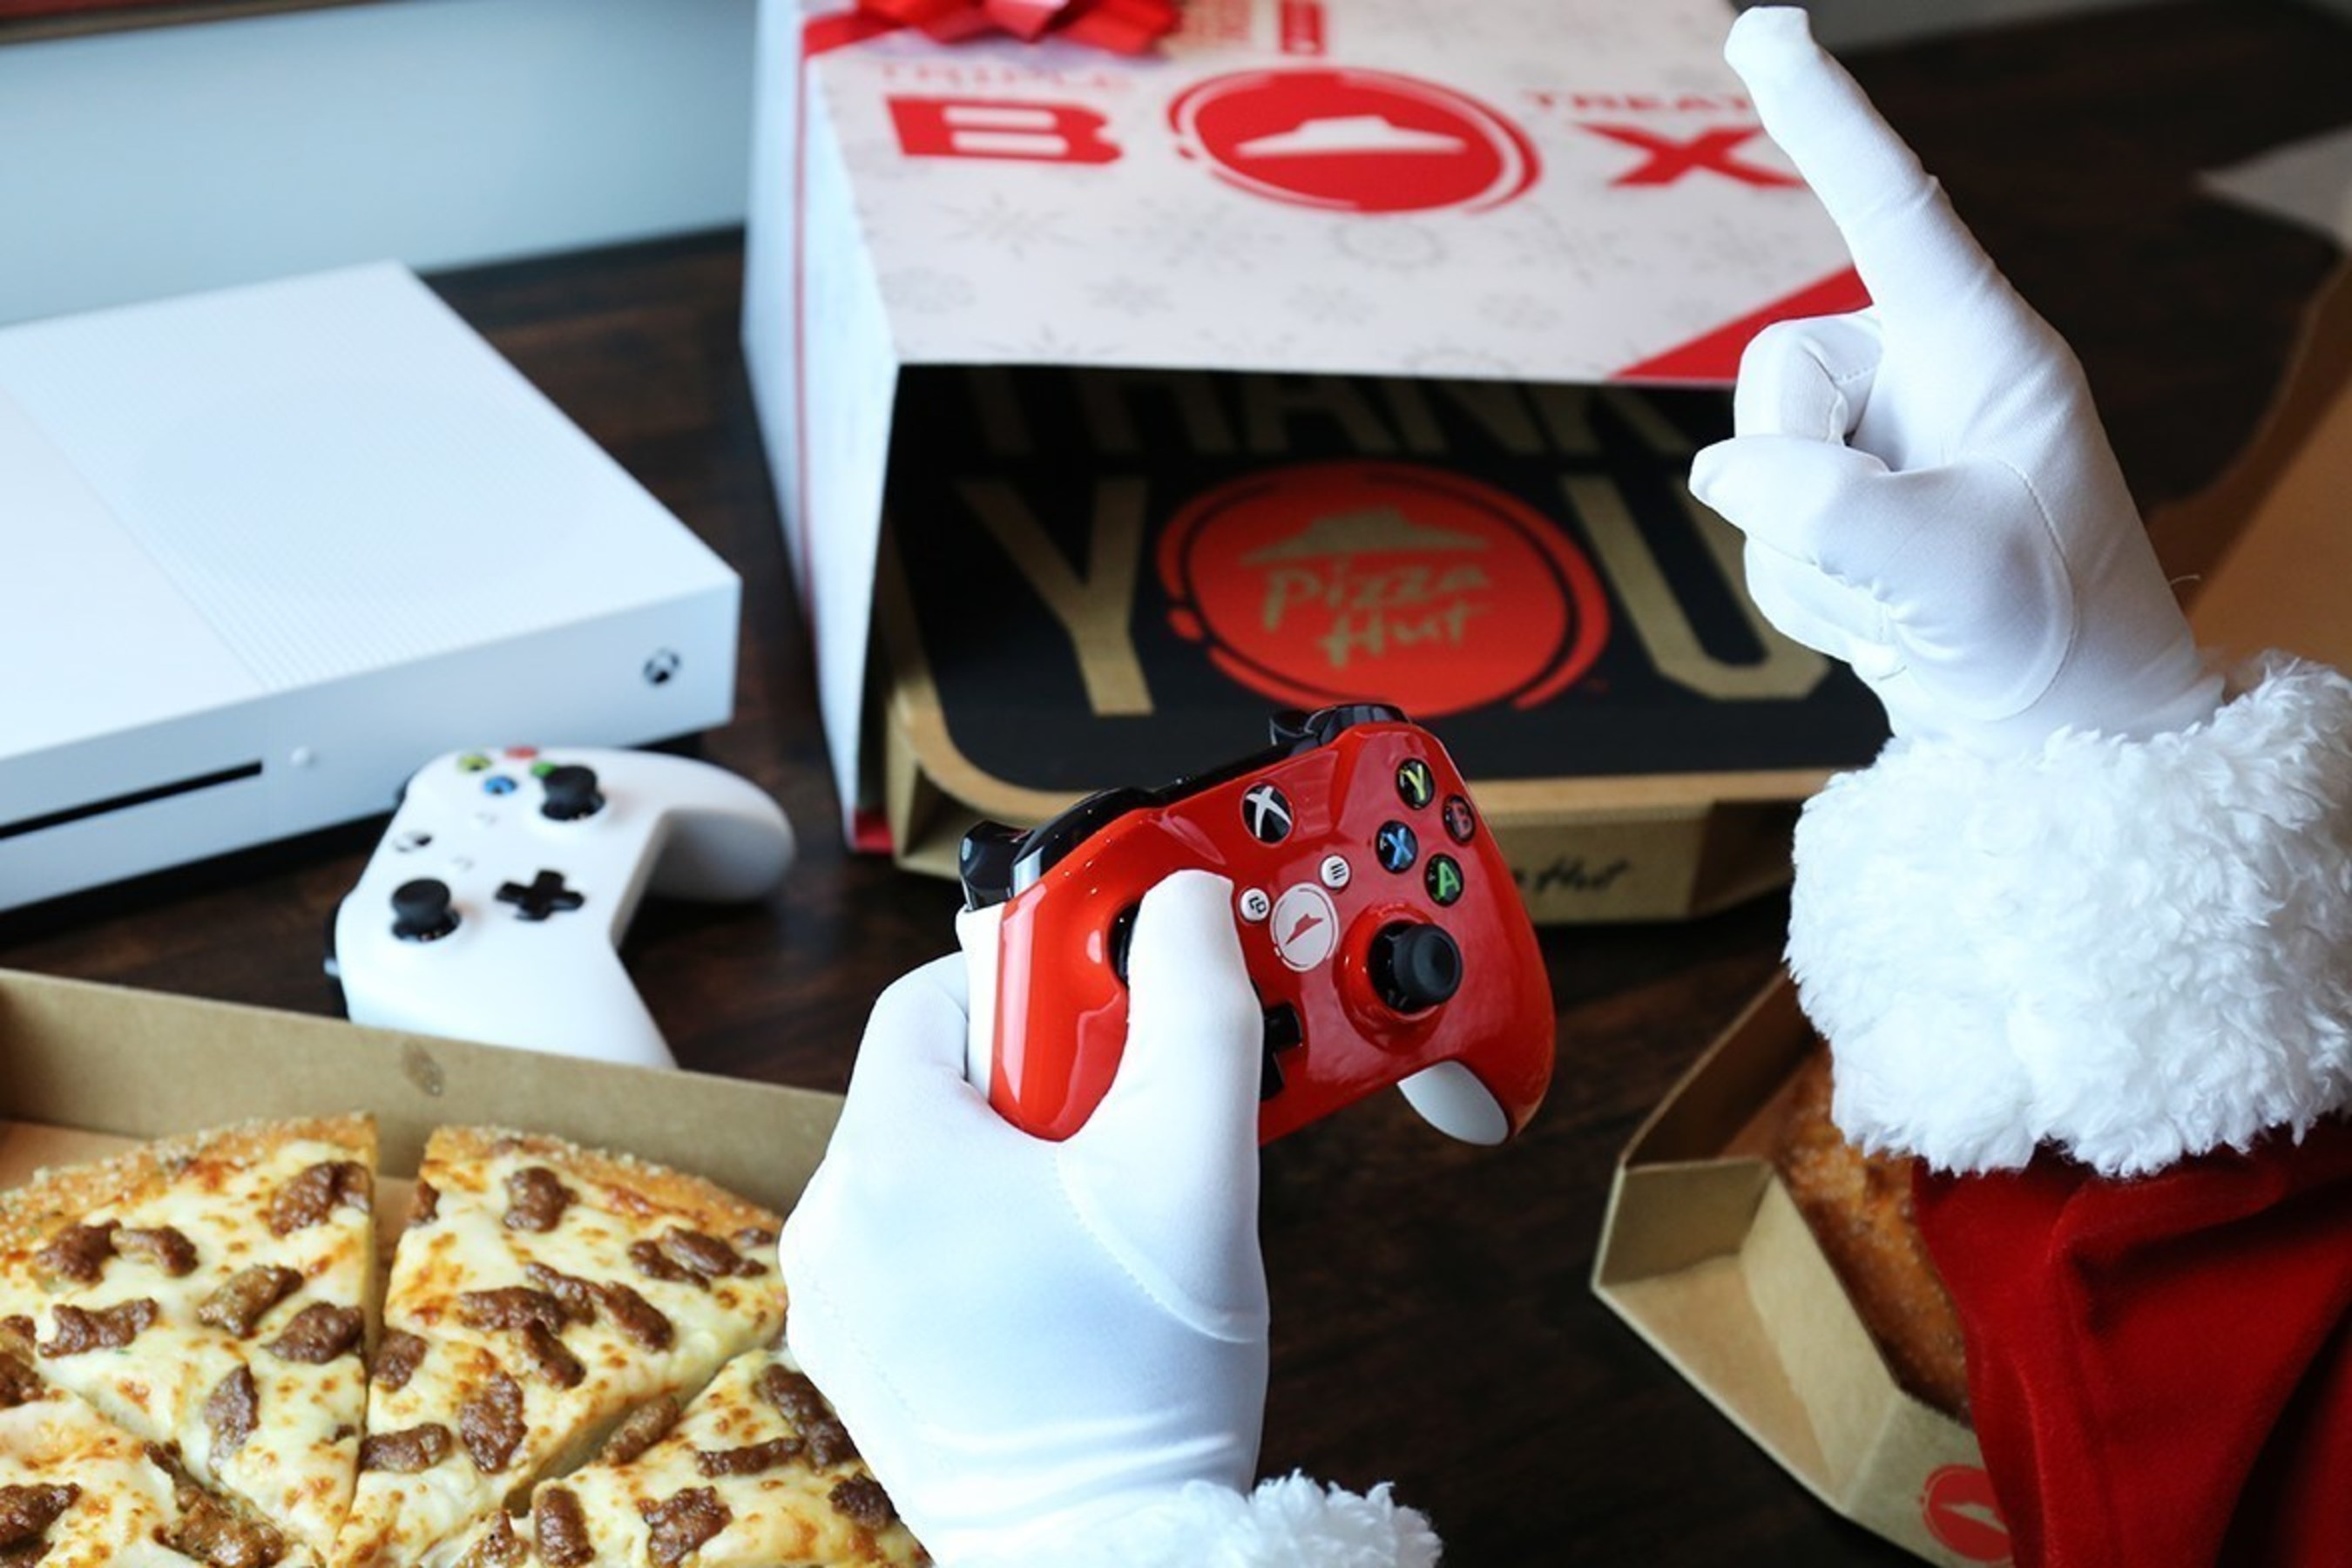 Pizza Hut and Xbox have teamed up to spread holiday cheer by adding a new treat to the Pizza Hut Triple Treat Box - the chance to win an Xbox One S, the ultimate games and 4k entertainment system every hour from Nov. 7 through Dec. 24. That's 1,140 free Xbox One S consoles. Customers will receive an entry code for a chance to win an Xbox One S and custom Pizza Hut designed red controller, as well as an offer for $10 off an Xbox One game with each purchase of a Triple Treat Box while supplies last.